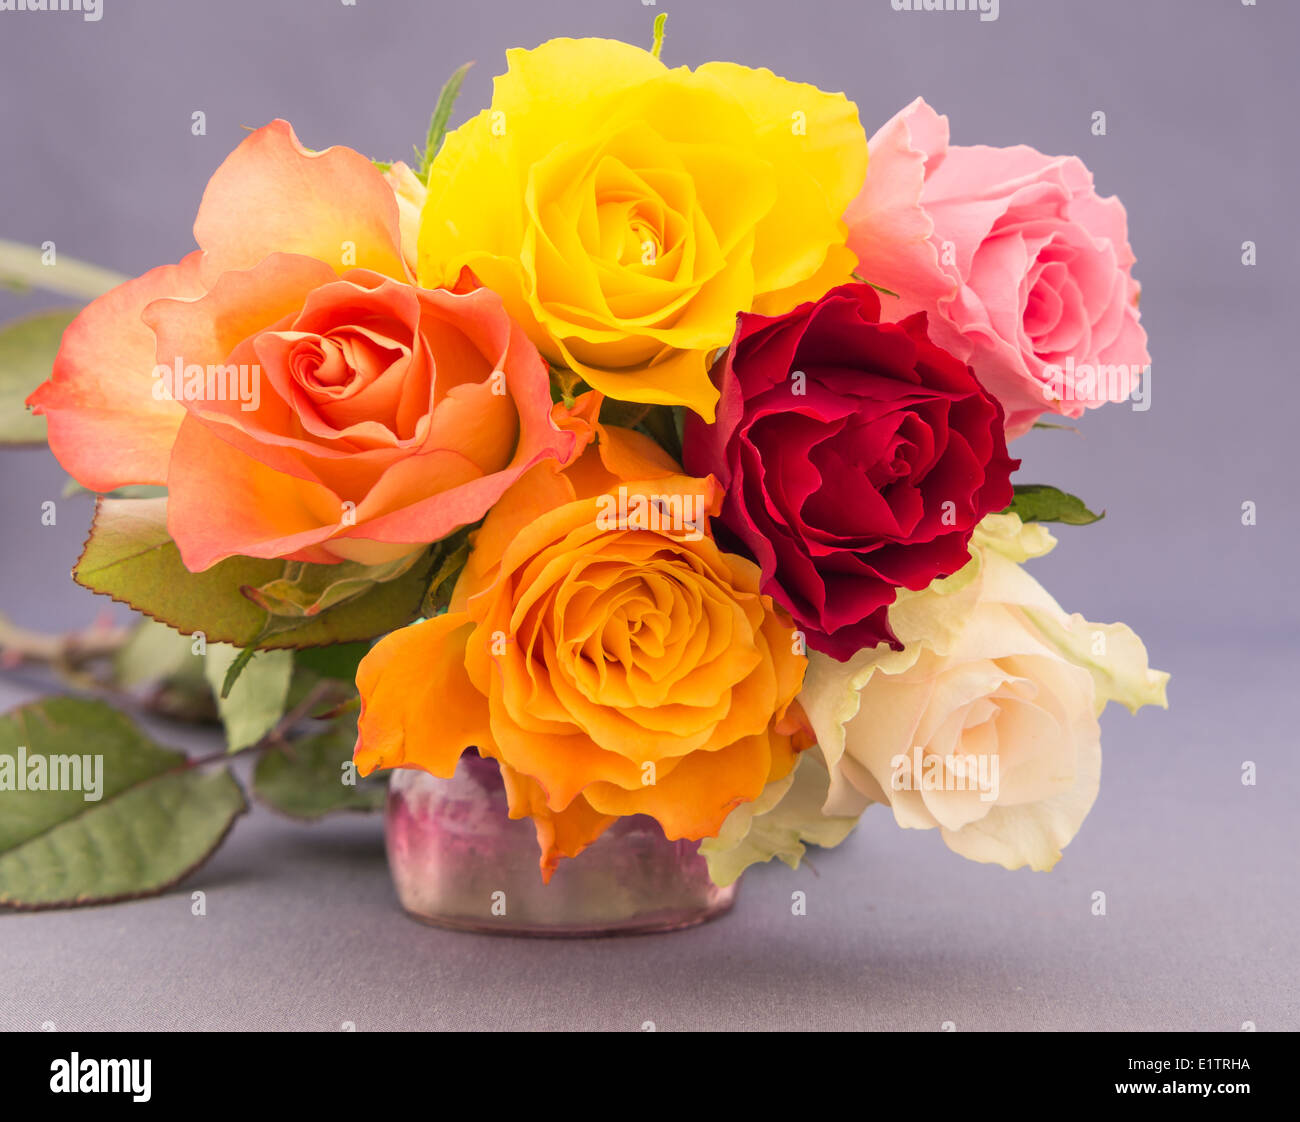 Close Up Of An Arrangement Of Yellow Red White Orange And Pink